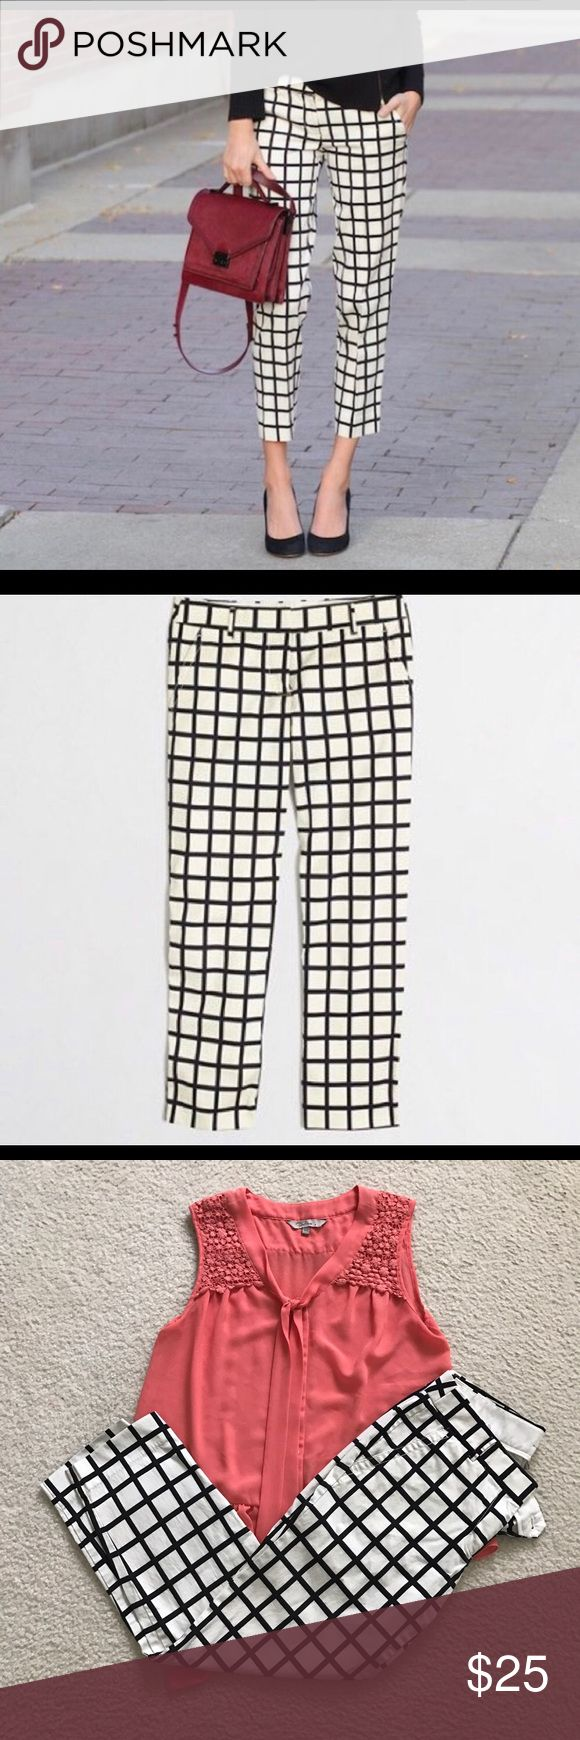 Jcrew factory black and white grid capris Jcrew factory printed slimmer pant in black and white windowpane. Perfect summer office attire. Looks great with pointed heels and layered sweater. EUC J. Crew Pants Capris